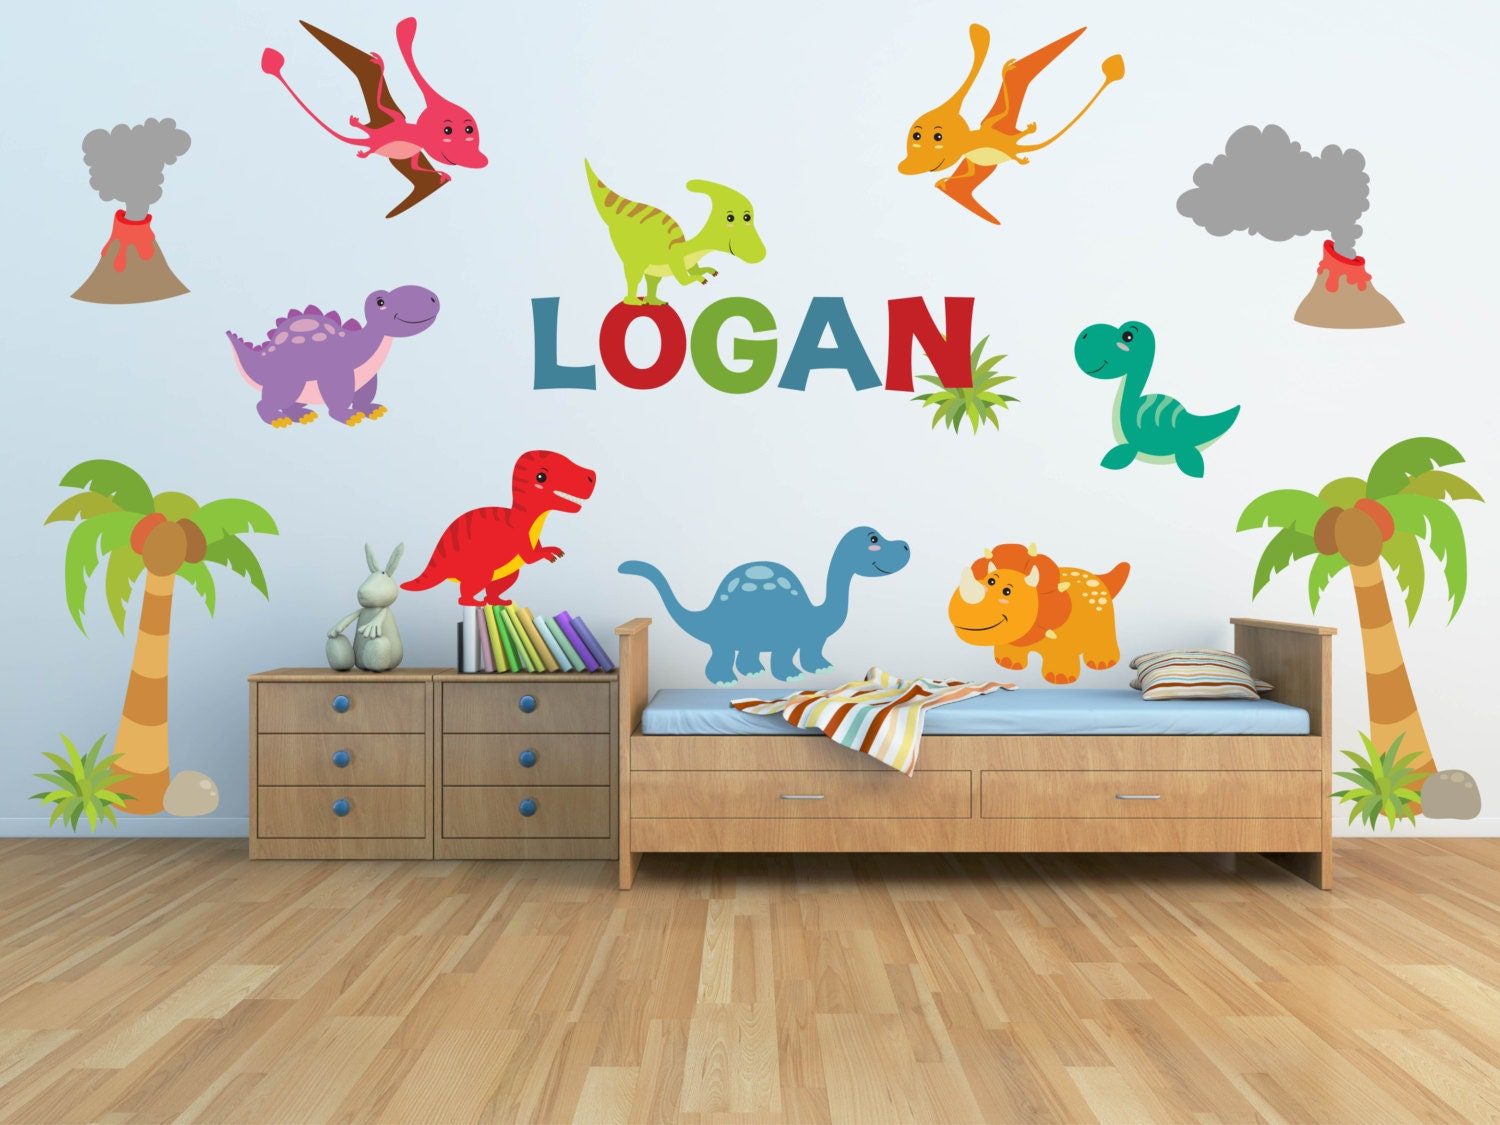 Dinosaur wall decal for kids bedroom personalized name for Nice ideas dinosaur decals for walls